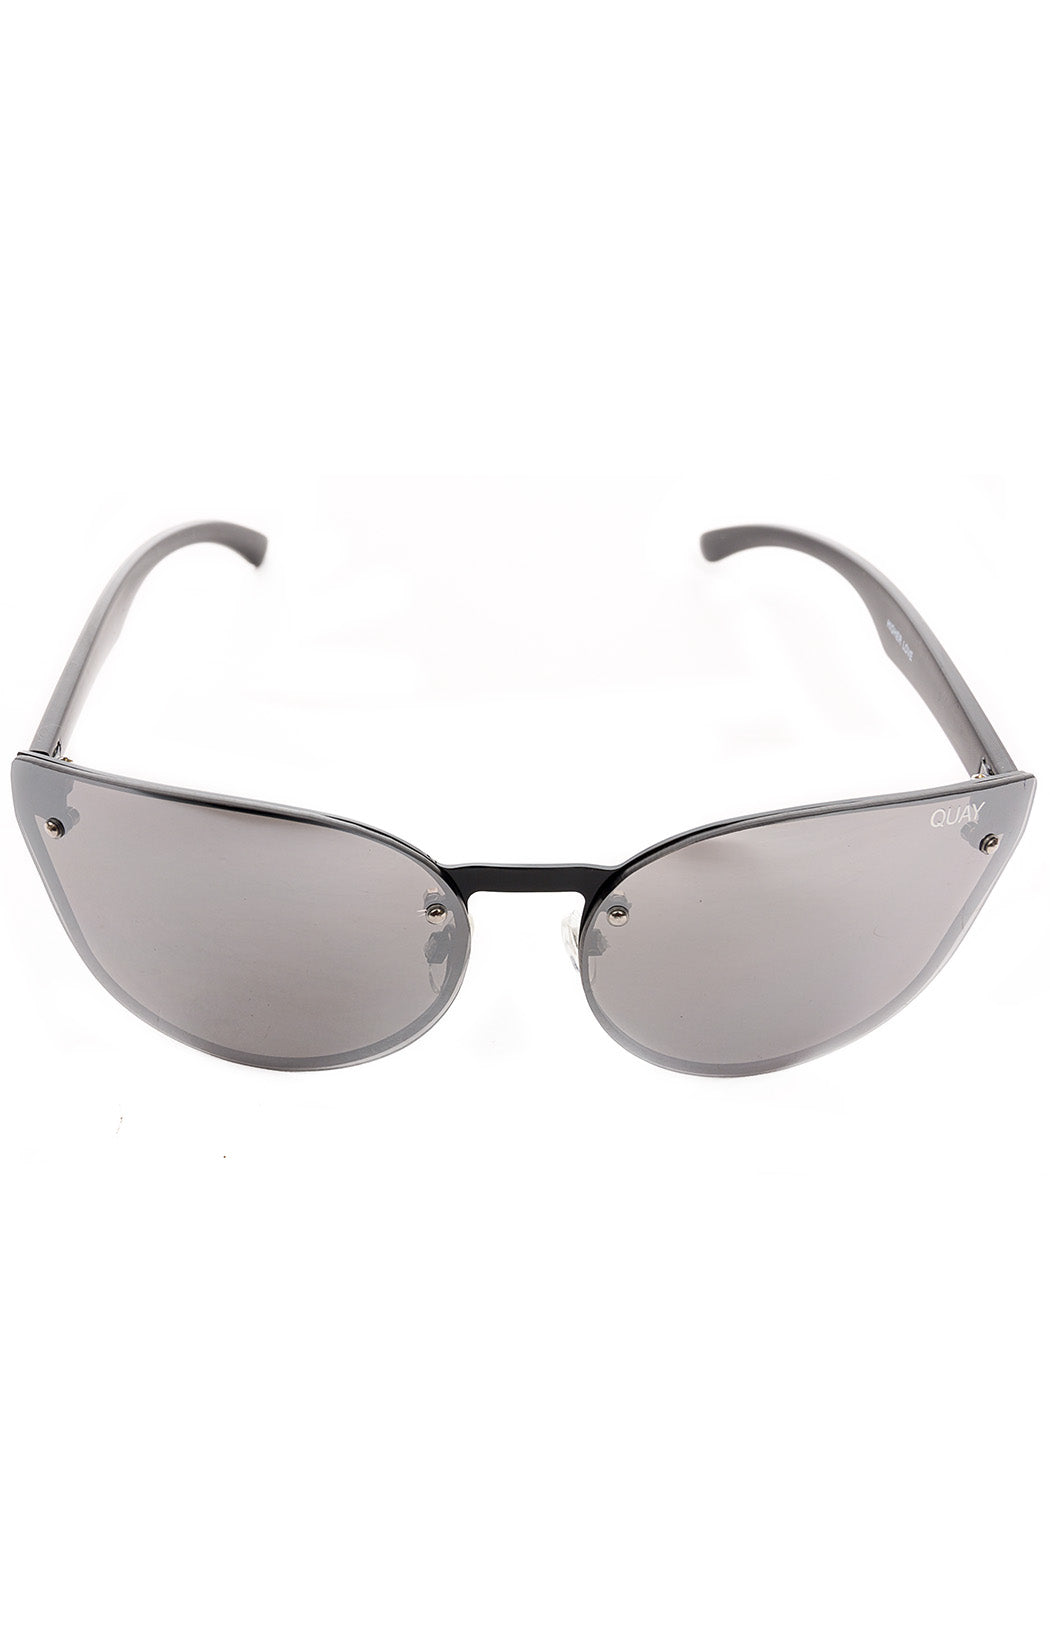 "Front view of QUAY  Sunglasses Size: 6"" W x 2.25"" L"